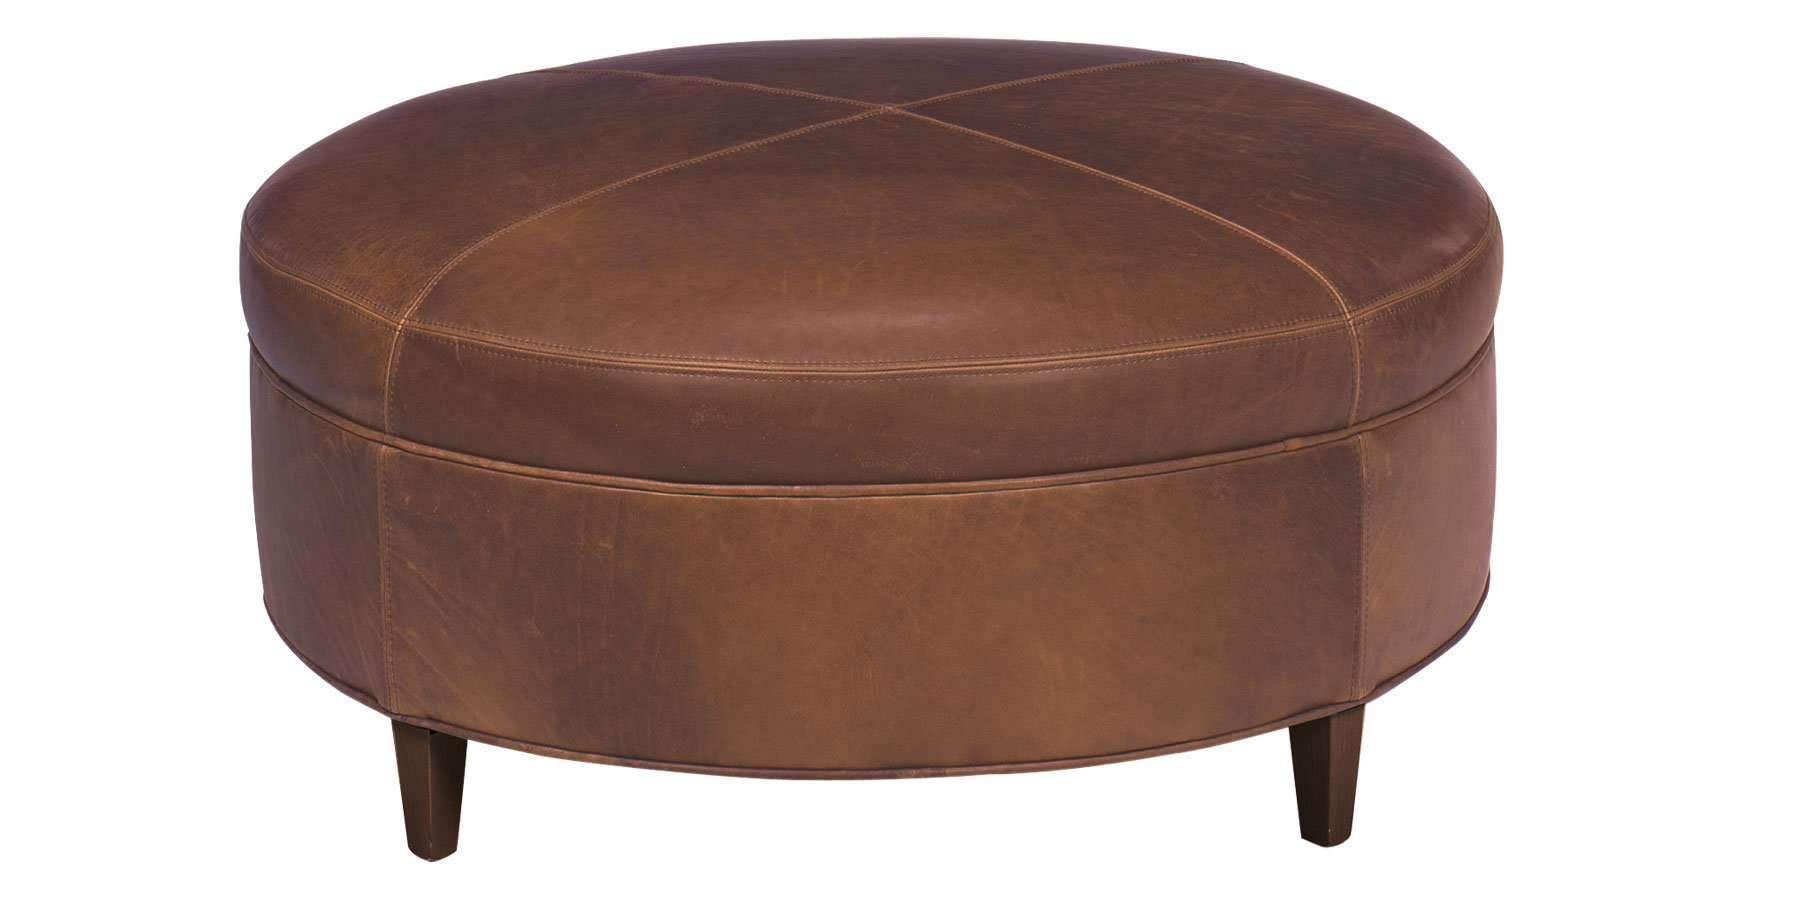 Andover ready to ship 40 inch round leather ottoman